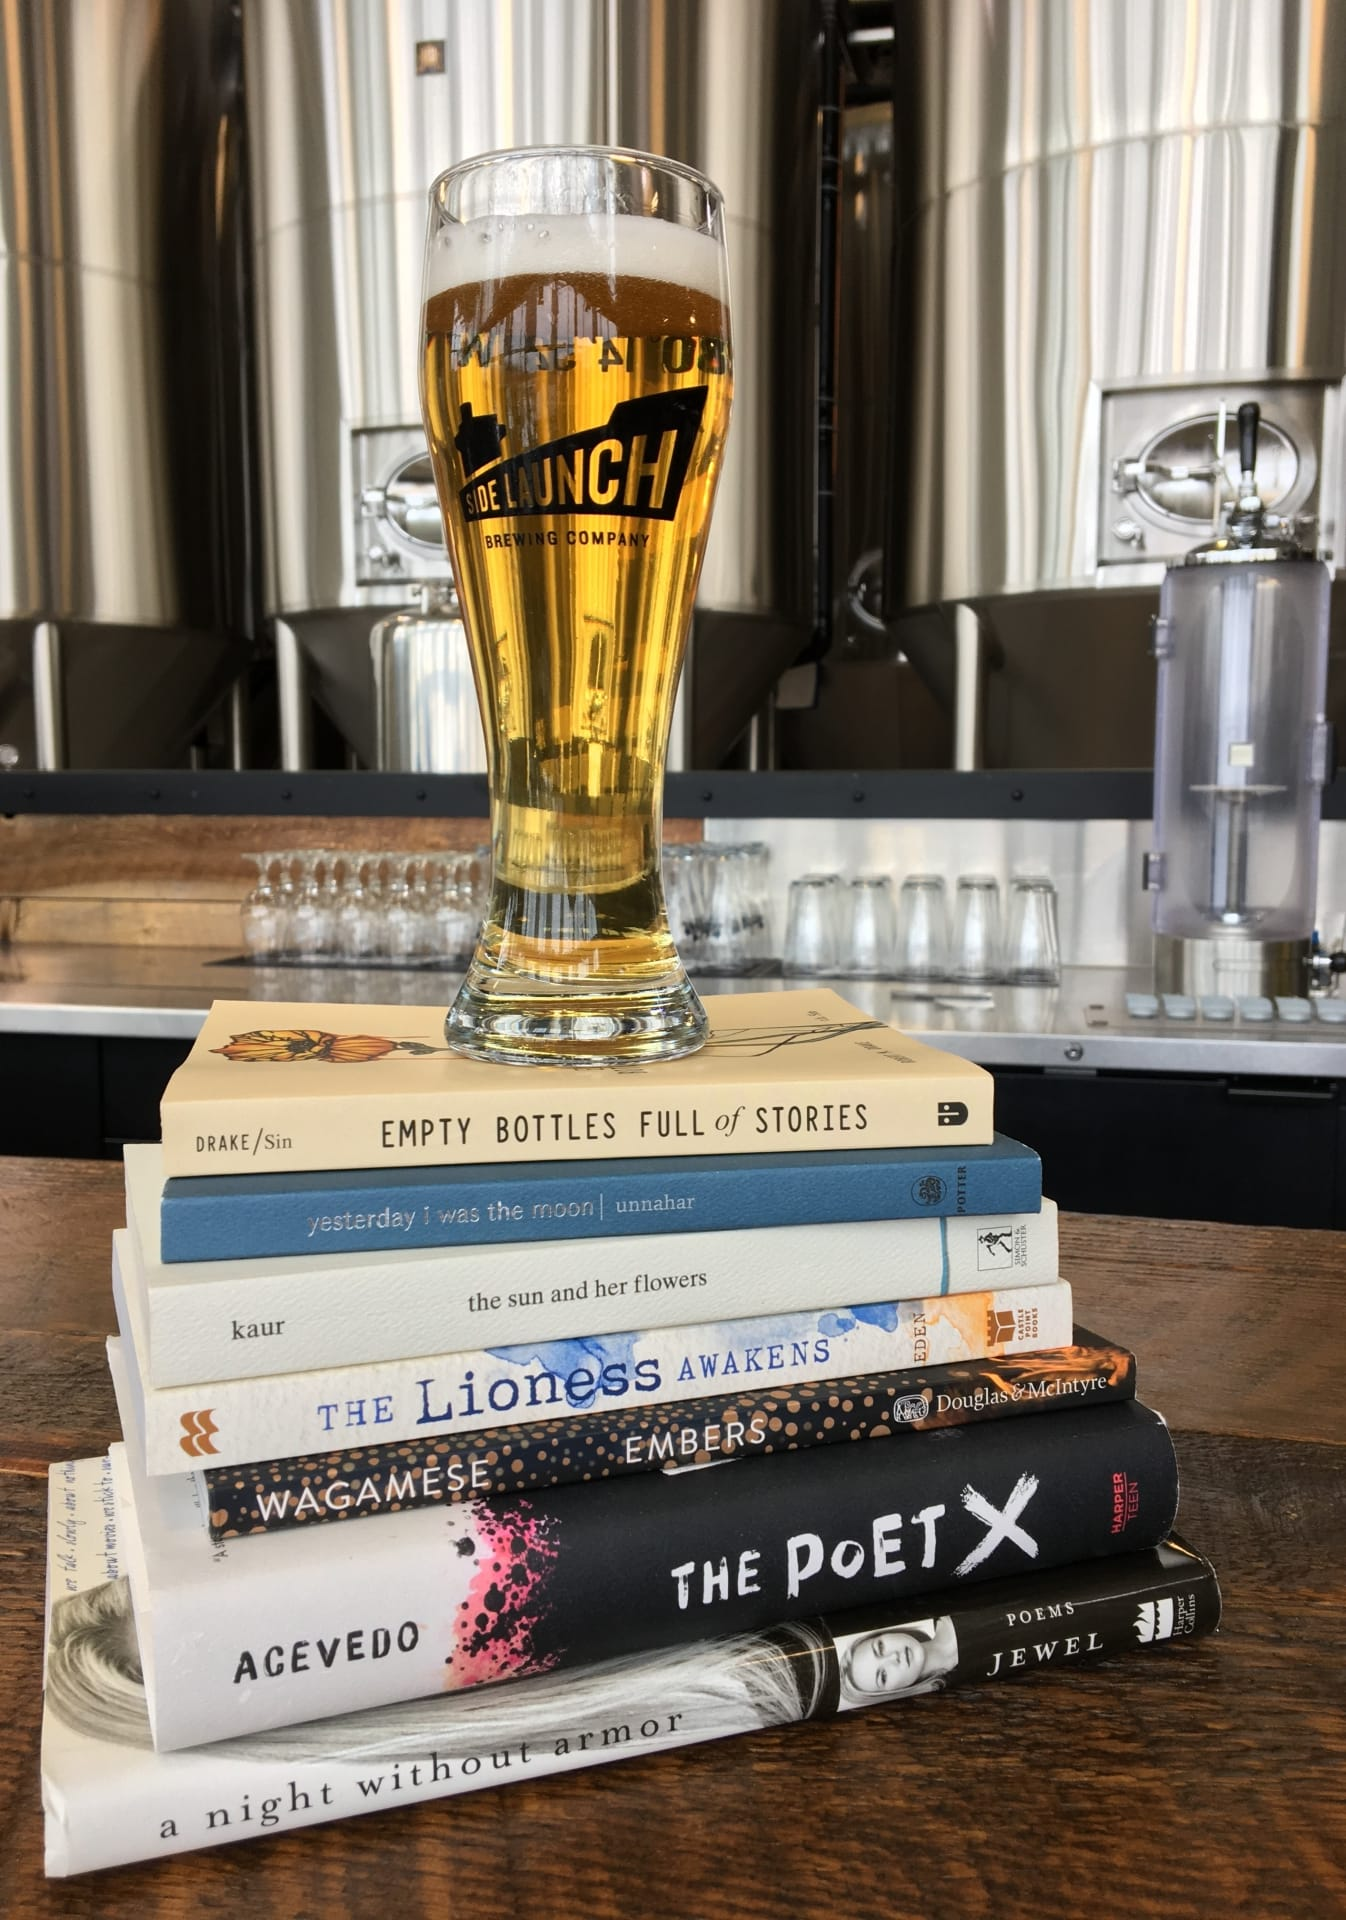 Glass of Side Launch beer on top of stacked poetry books